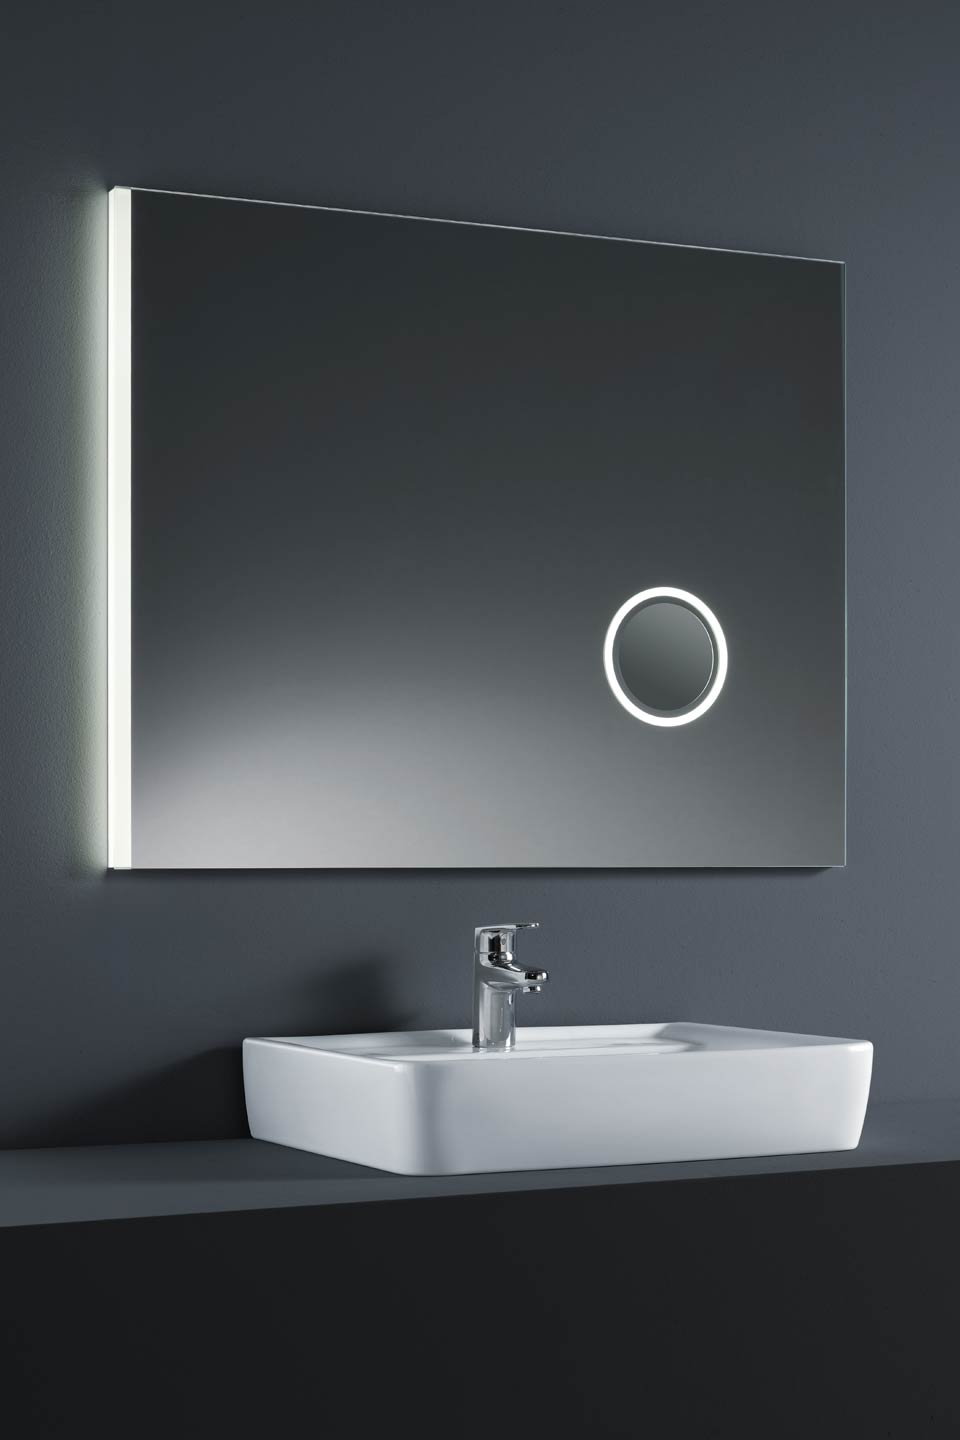 Awesome miroir salle de bain led contemporary awesome for Miroir lumineux